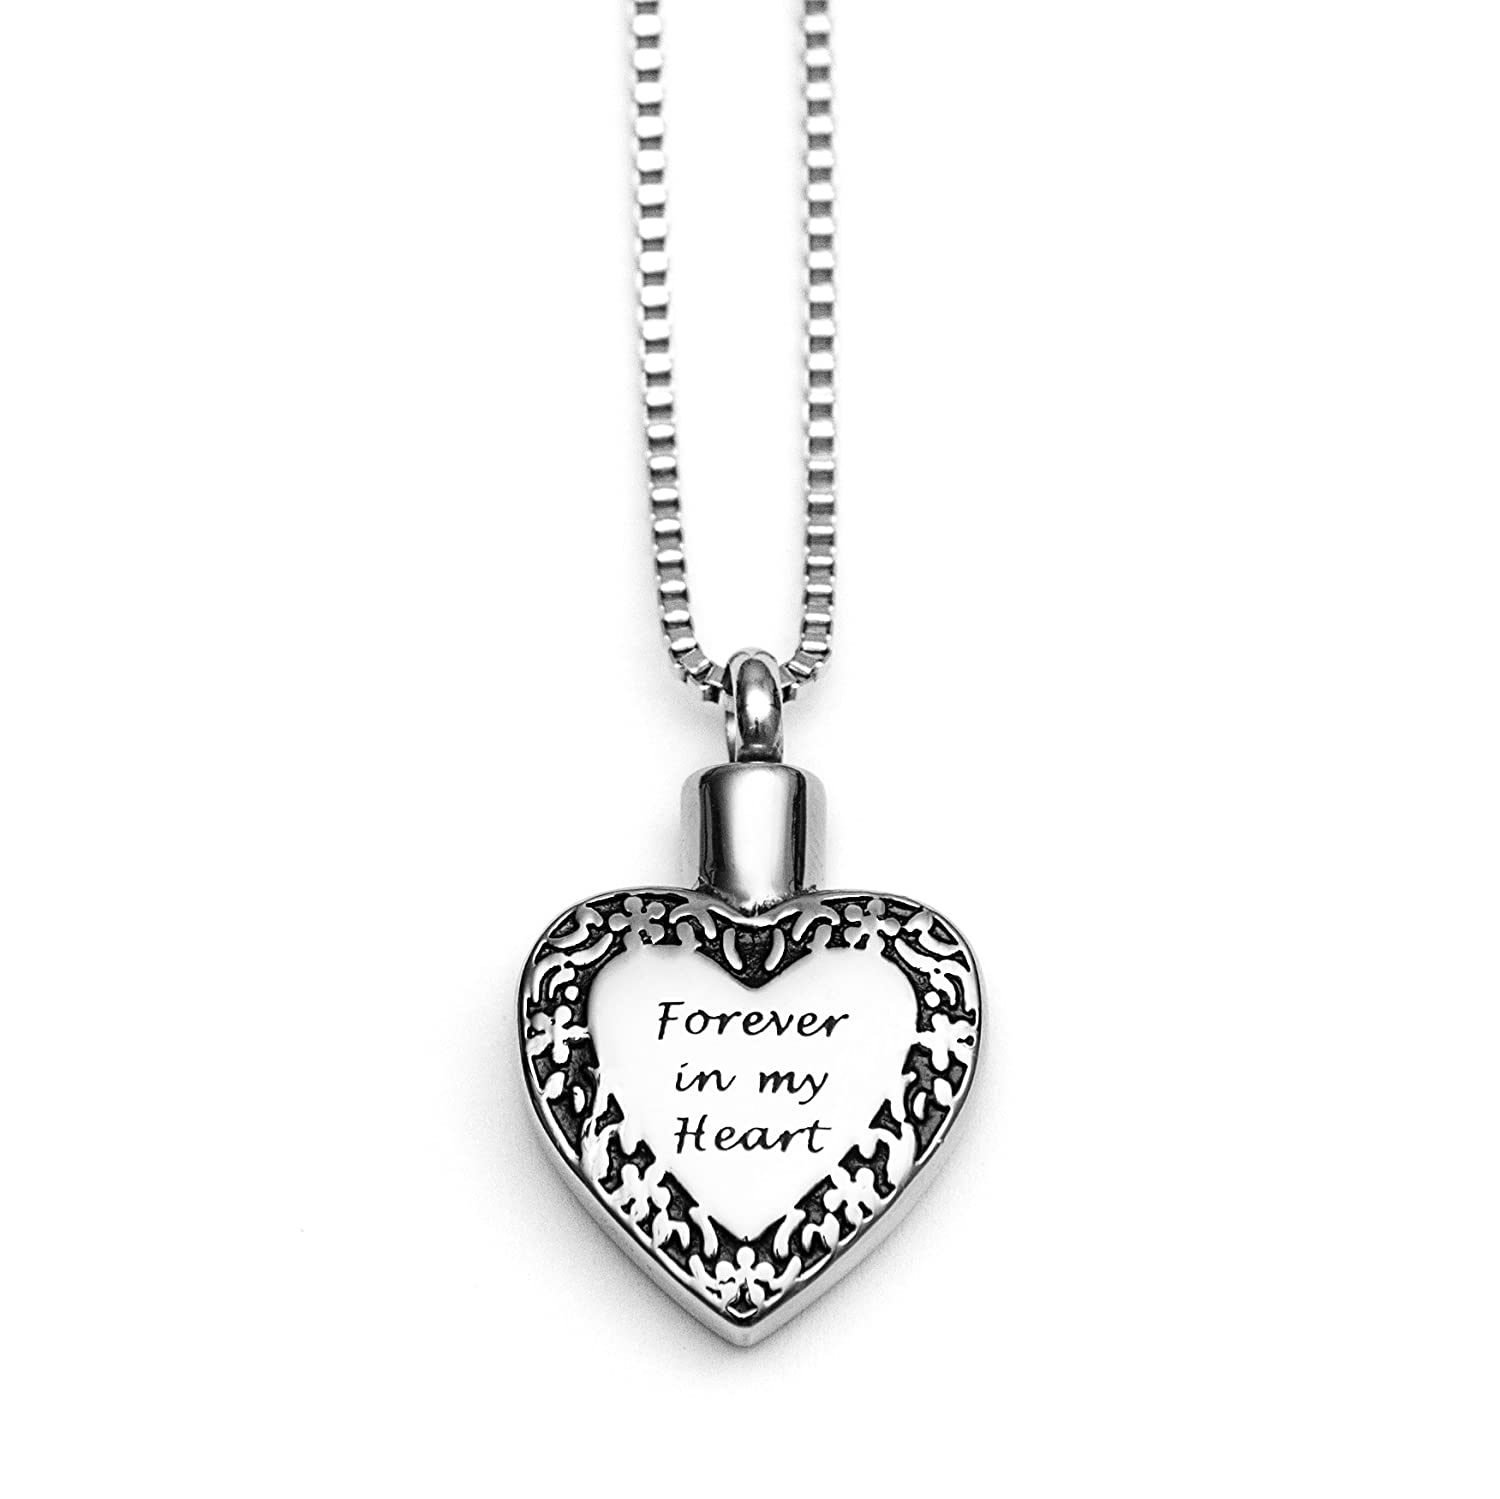 urn my memorial heart necklace in mom ash itm pendant new cremation jewelry forever